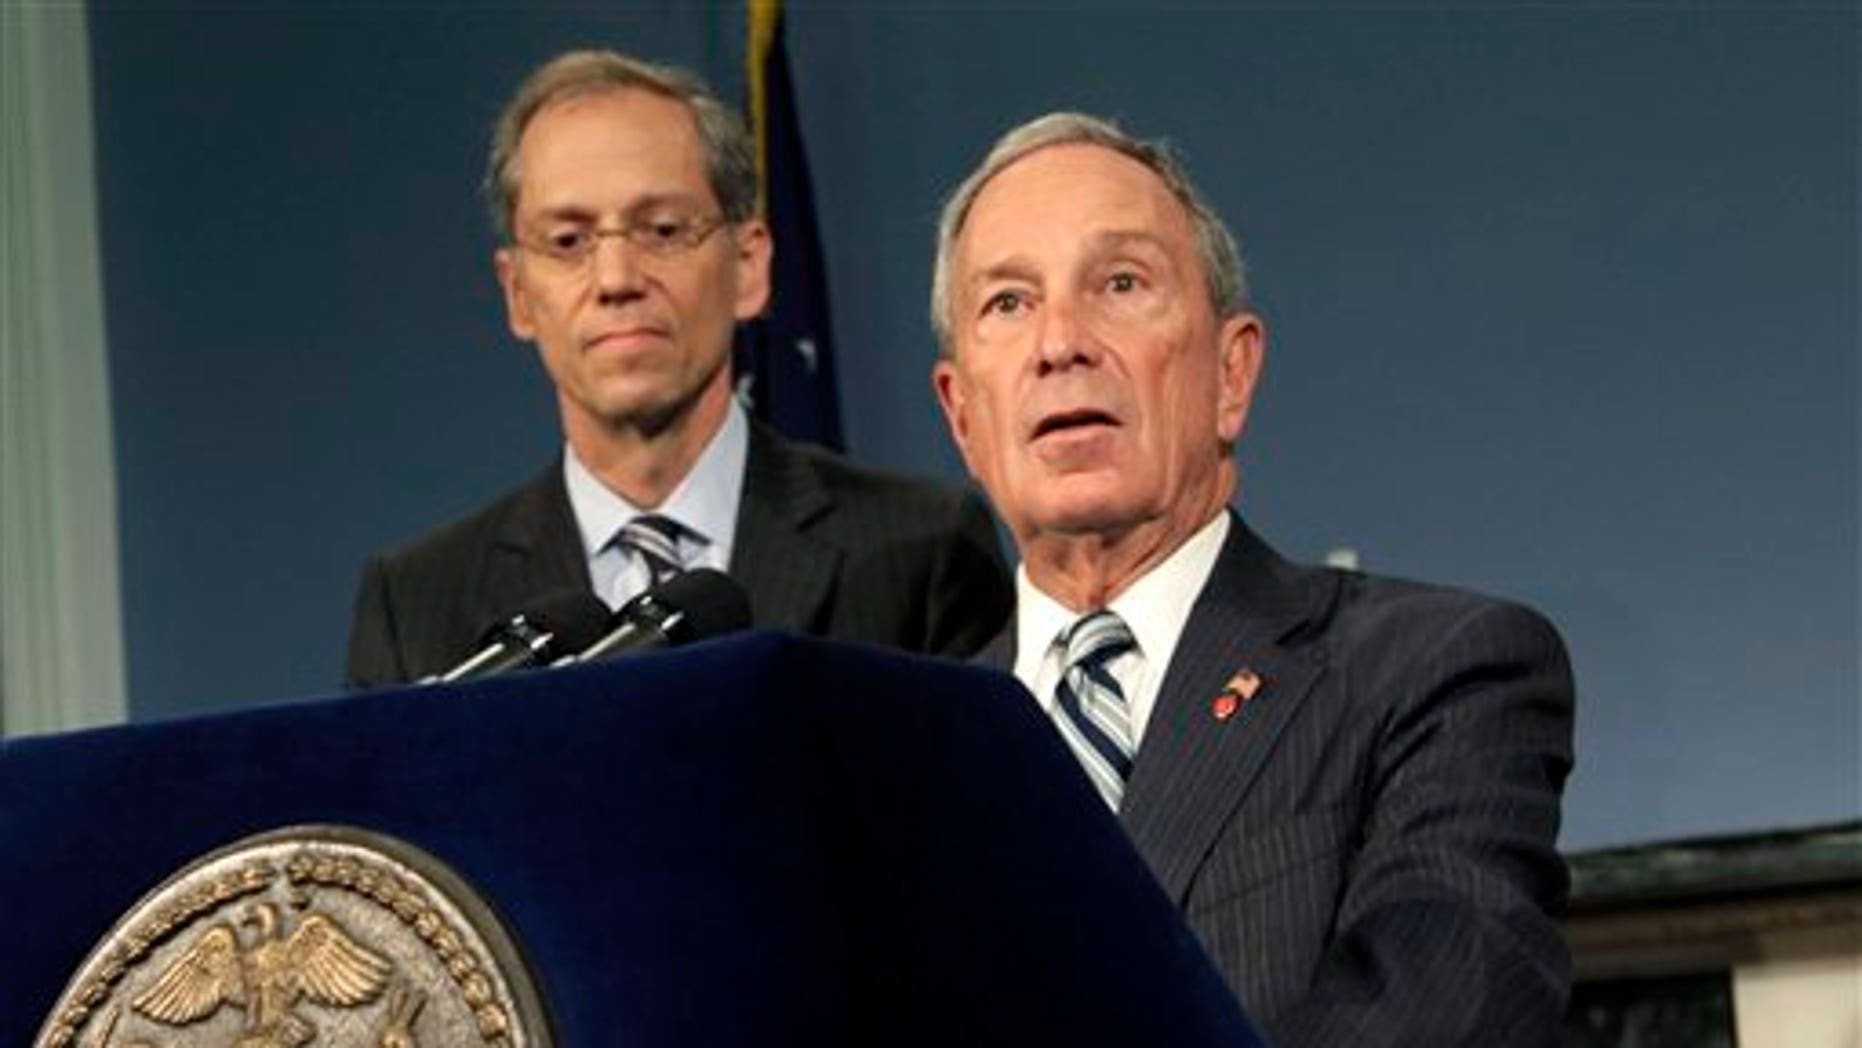 Mayor Michael Bloomberg is ready to remove all fatty foods from public and private hospitals.